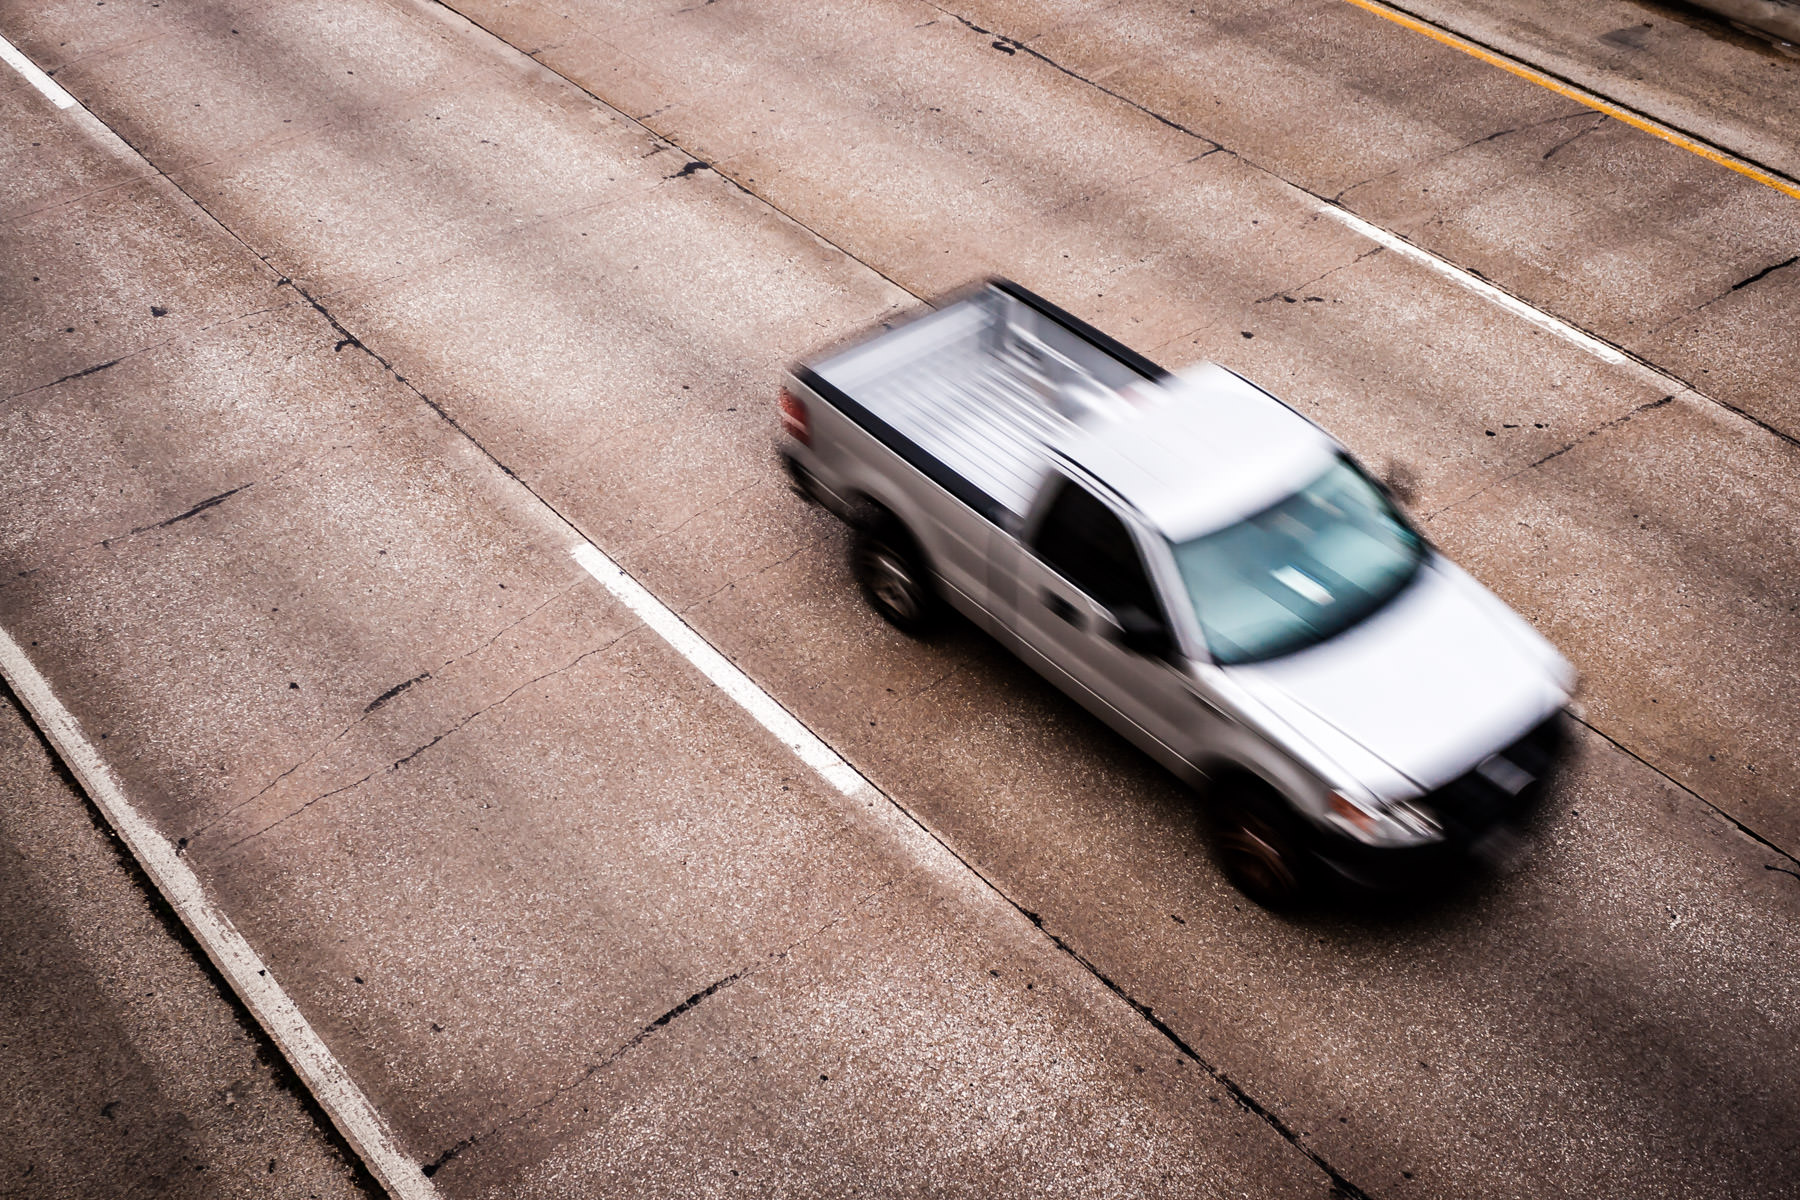 A pickup truck speeds by on Dallas' Woodall Rogers Freeway.